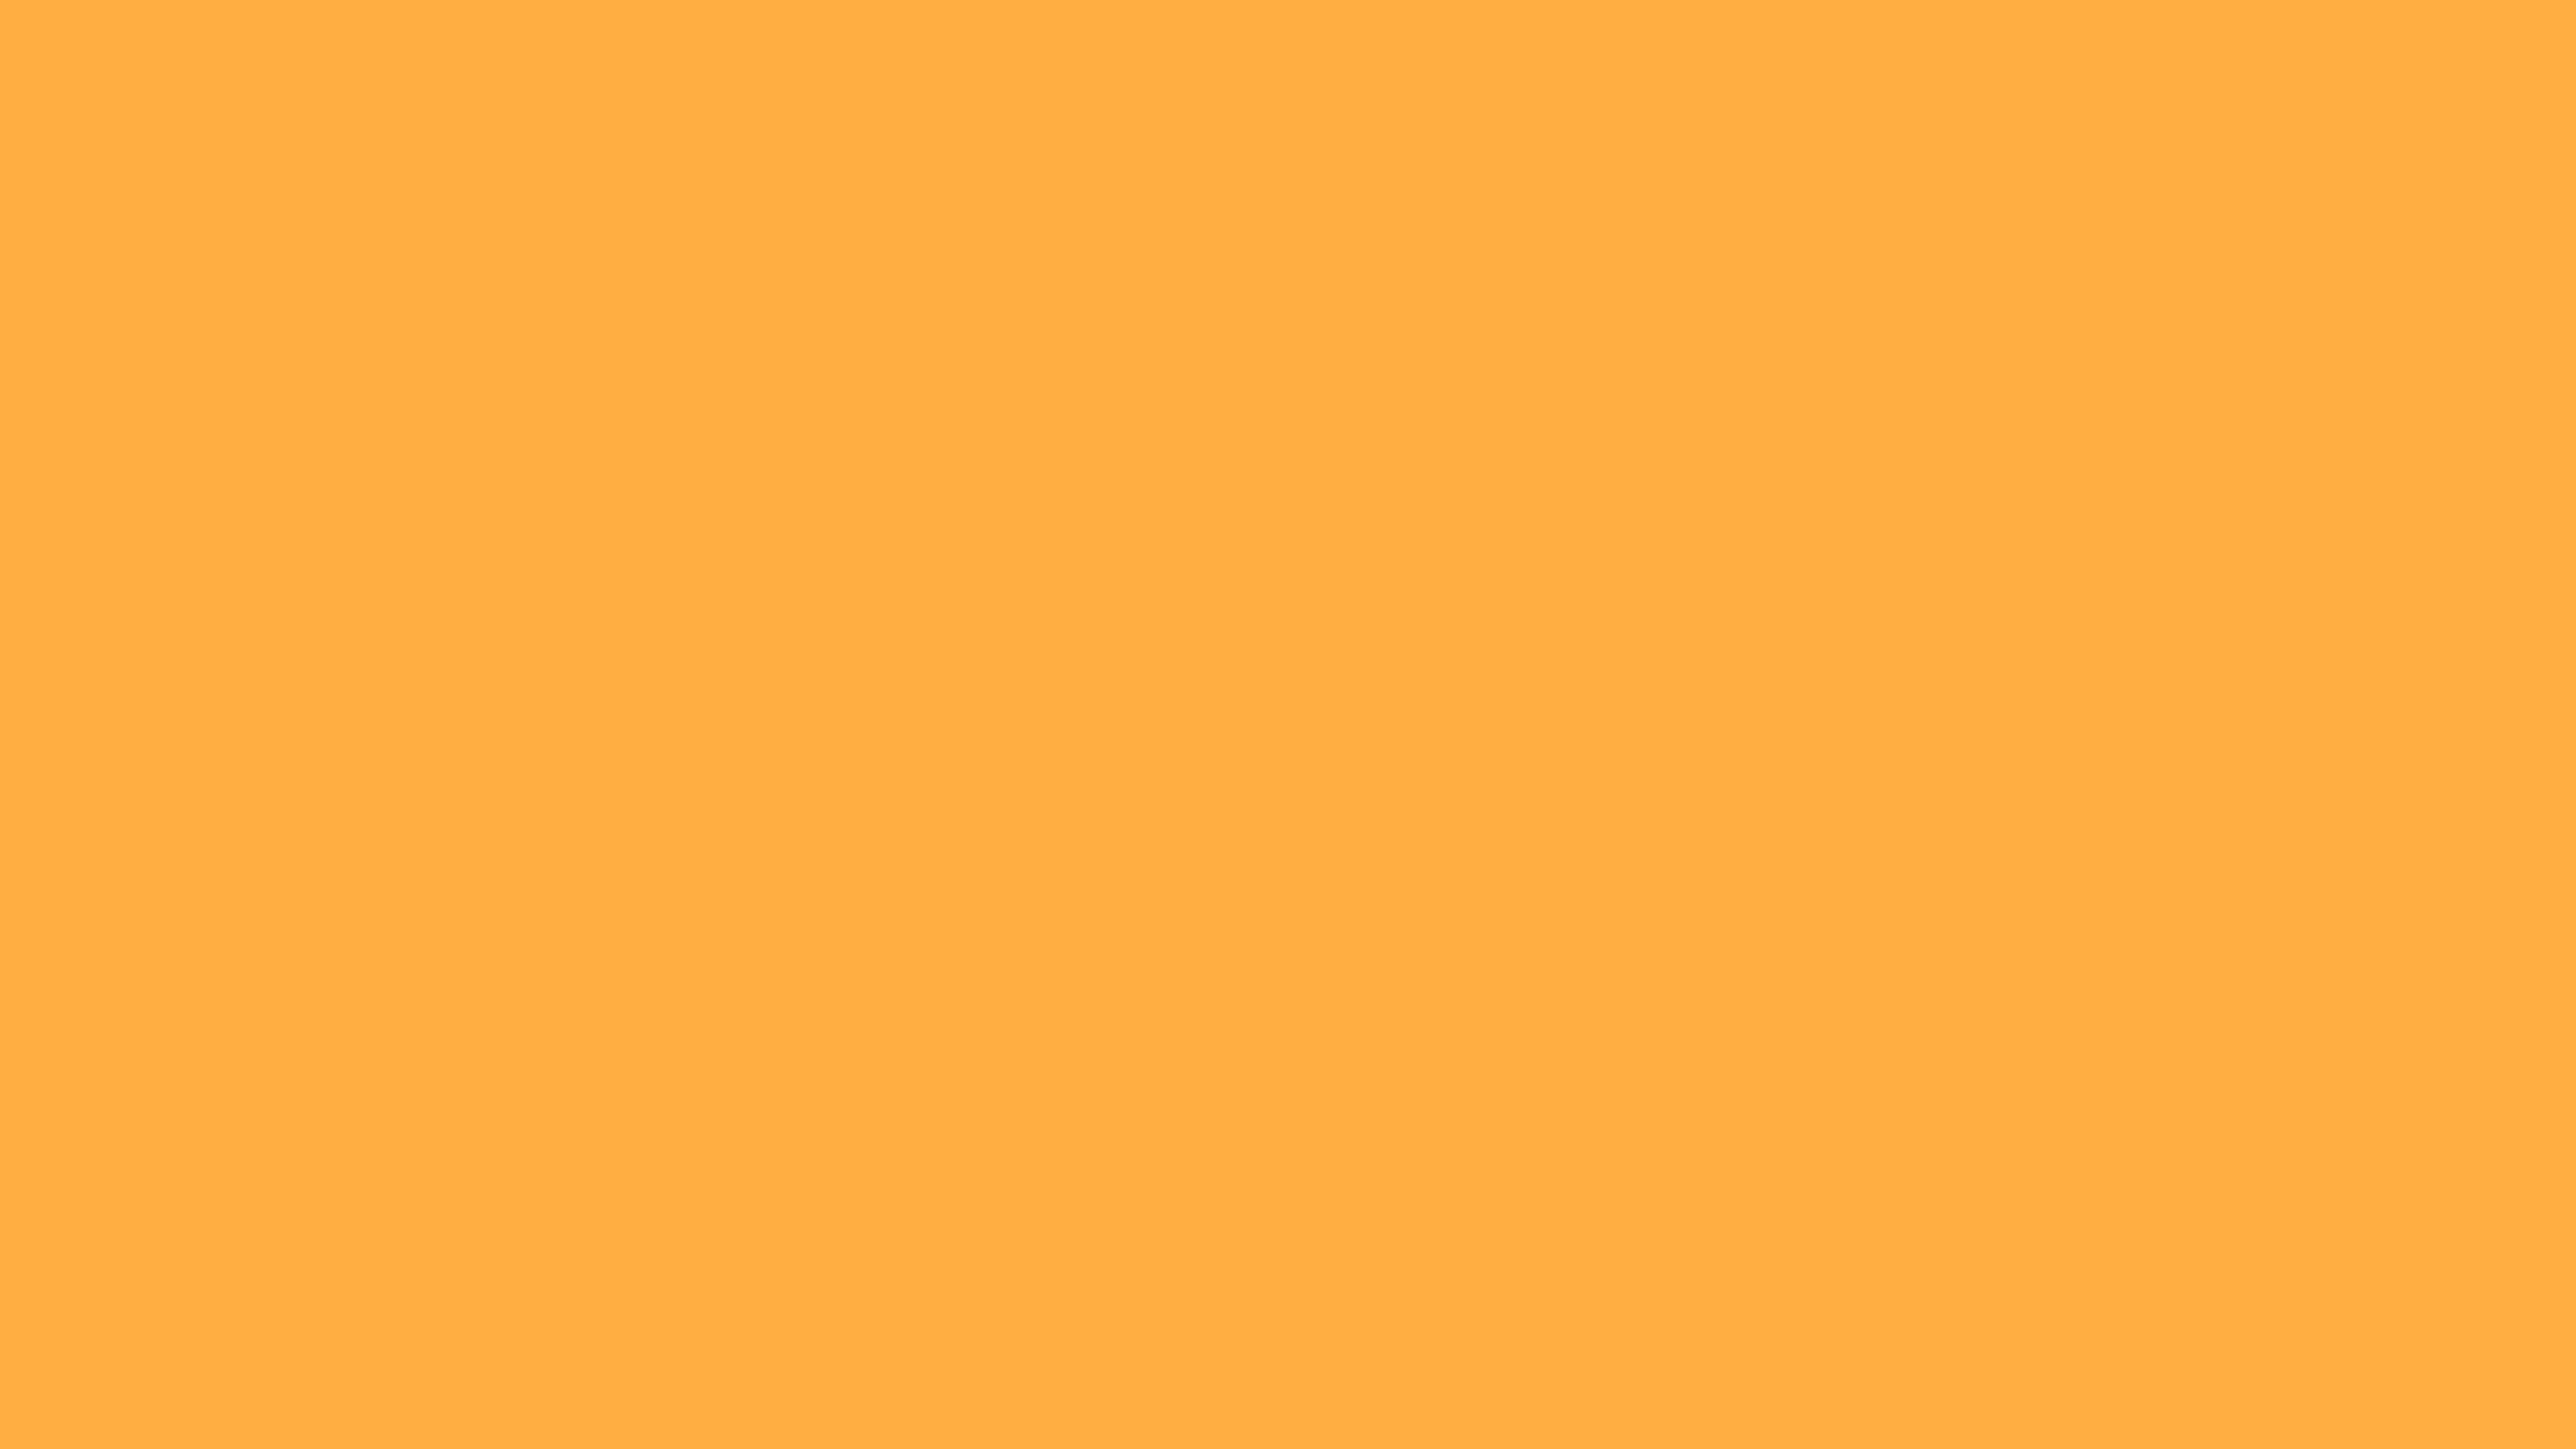 5120x2880 Yellow Orange Solid Color Background